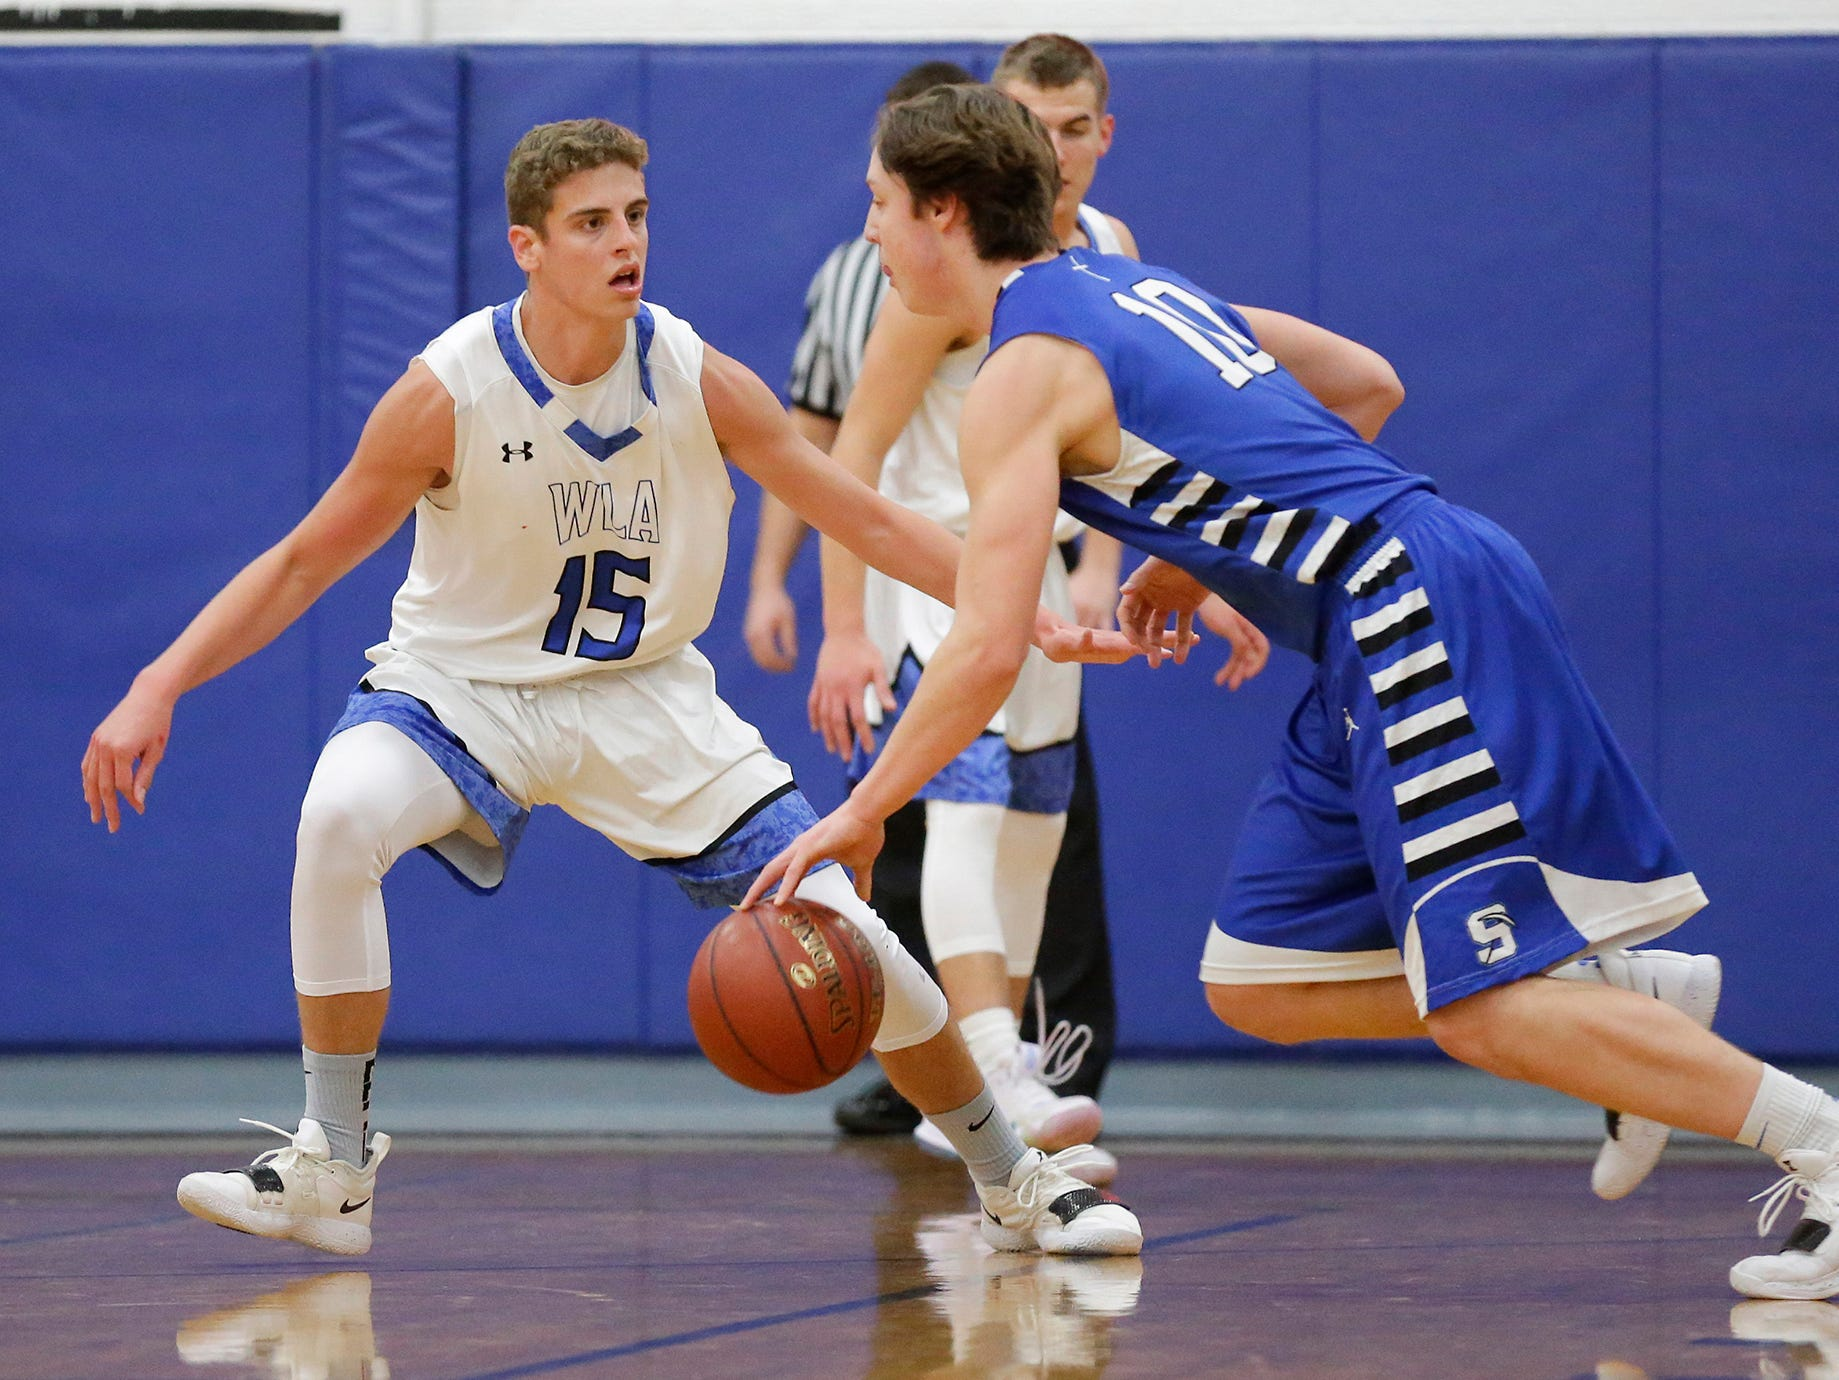 Winnebago Lutheran Academy boys basketball's Zach Loehr defends against St. Mary's Springs Academy's Cade Christensen Tuesday, January 8, 2019 during their game in Fond du Lac. Winnebago Lutheran Academy won the game 69-66. Doug Raflik/USA TODAY NETWORK-Wisconsin